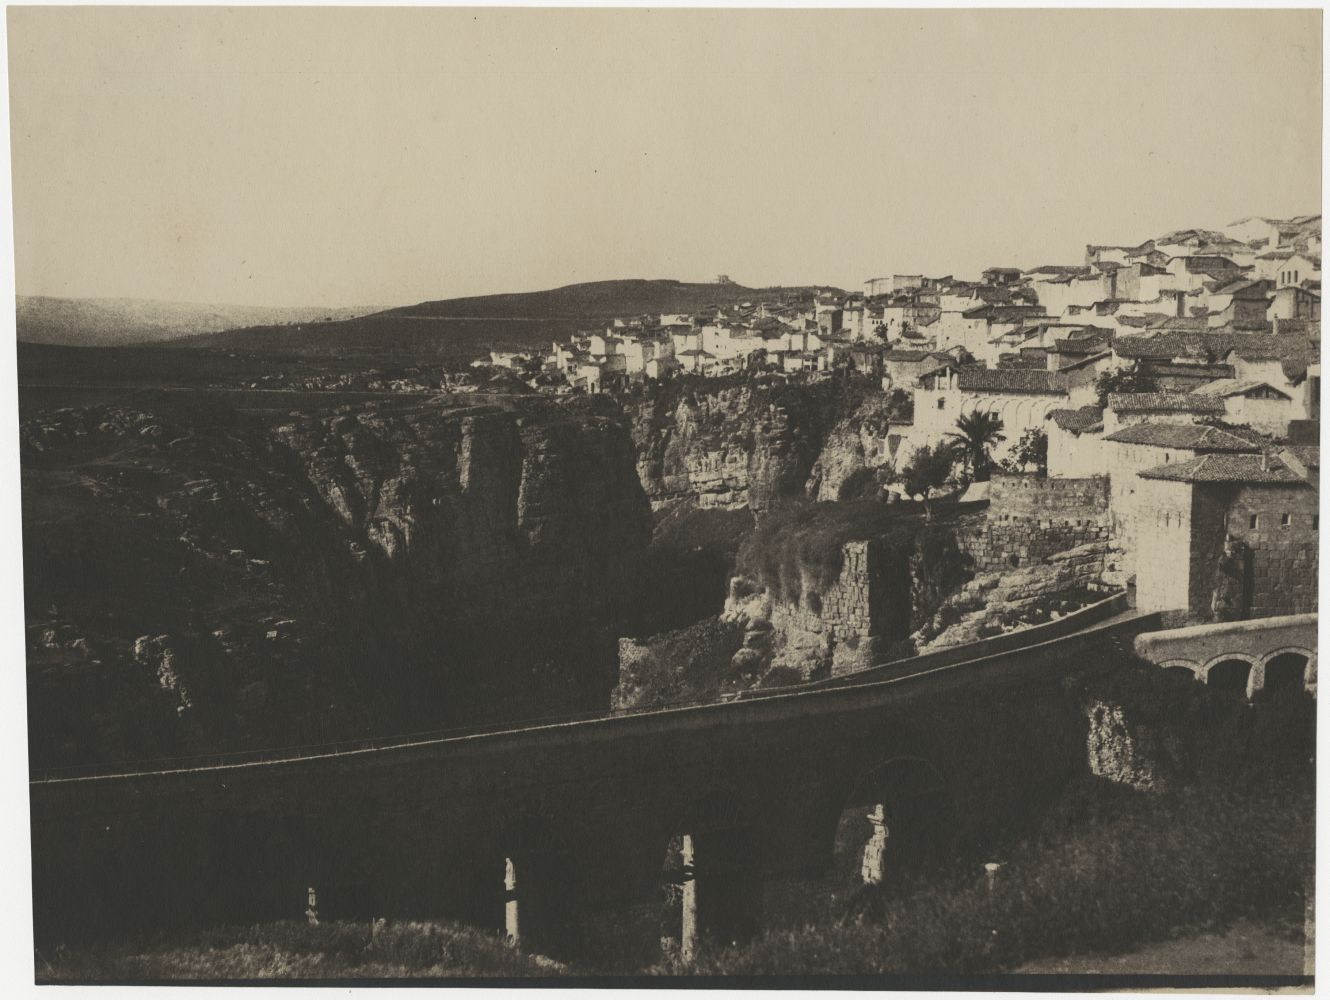 "John Beasley GREENE (American, born in France, 1832-1856) El-Kantara Bridge, Constantine, Algeria*, 1855-1856 Lightly coated salt print from a paper negative 22.5 x 30.3 cm on 22.8 x 30.3 cm paper Inscribed ""Constantine"" in pencil on verso"